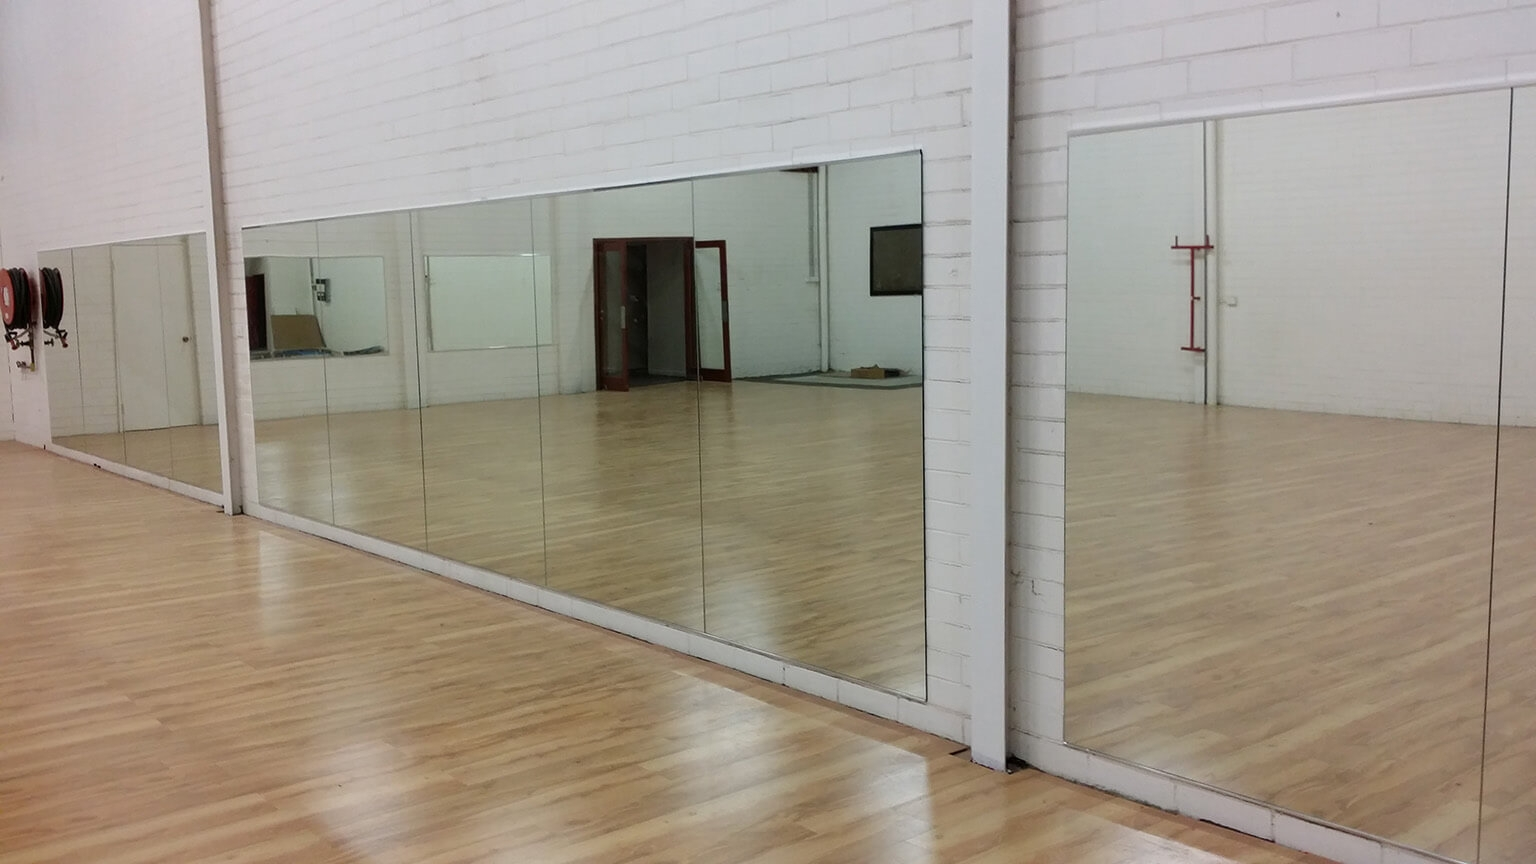 Wall Mounted Mirrors For Dance Studio